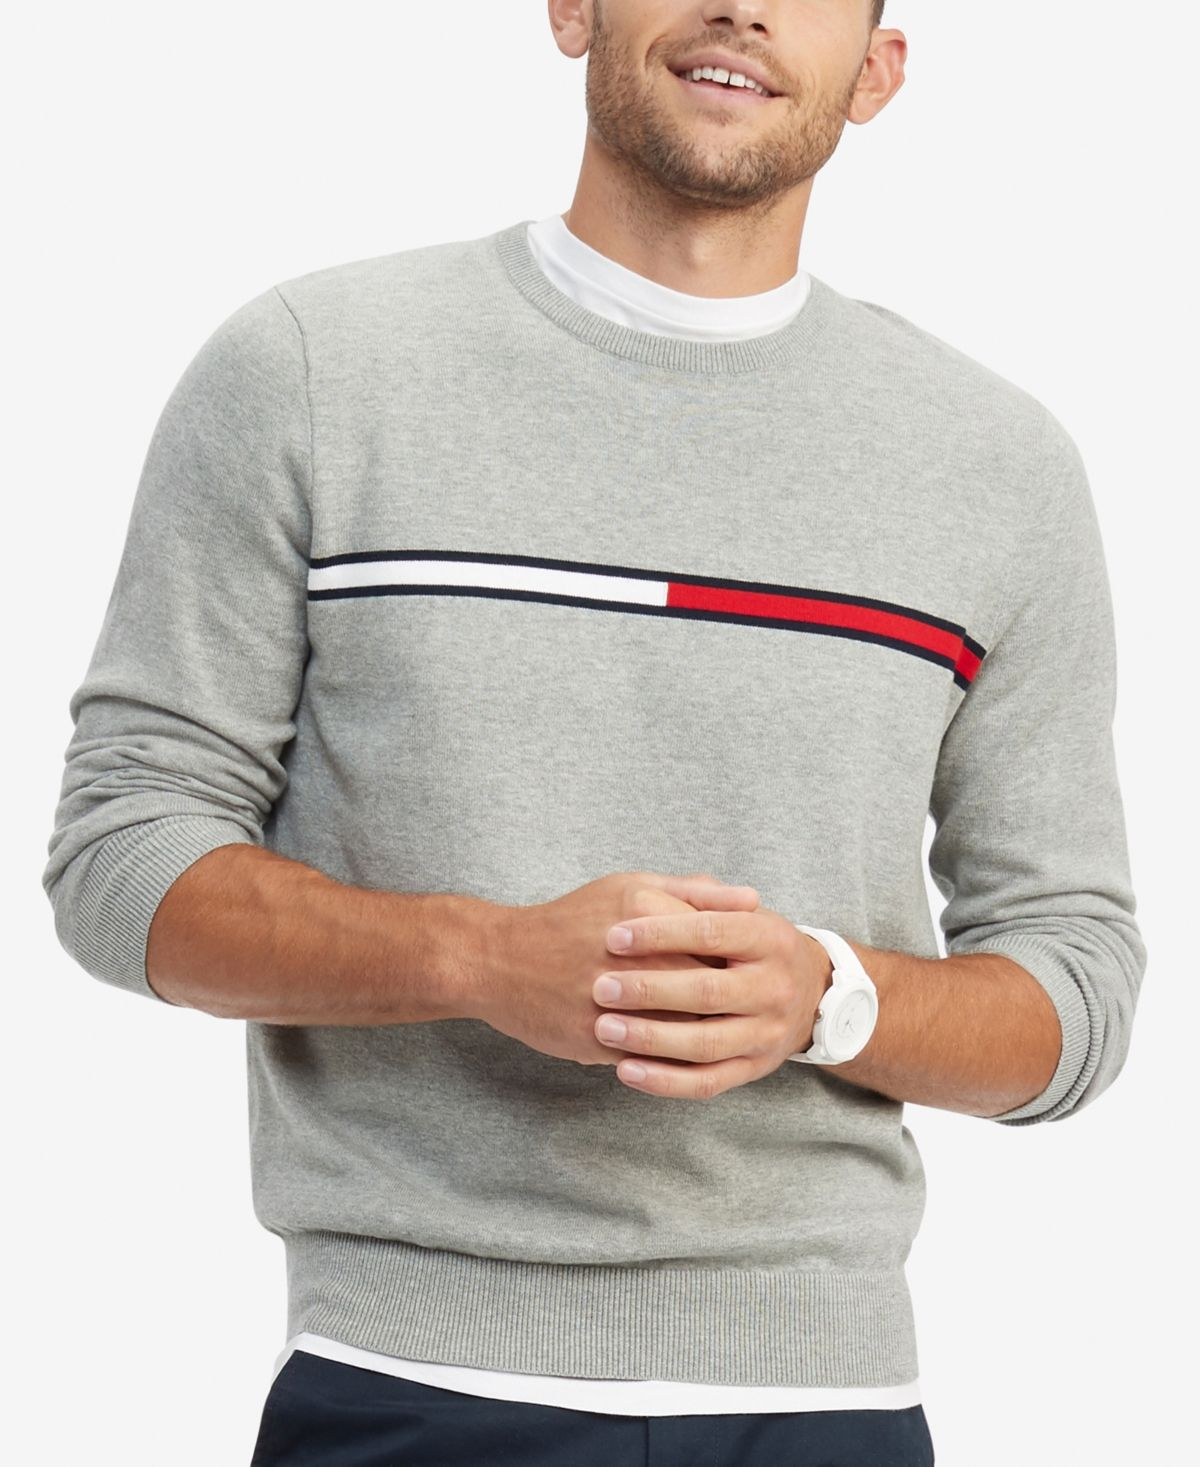 Tommy Hilfiger Men S Logo Crewneck Cotton Sweater Grey Heather In 2021 Nike Clothes Mens Tommy Hilfiger Outfits Men Sweater [ 1467 x 1200 Pixel ]